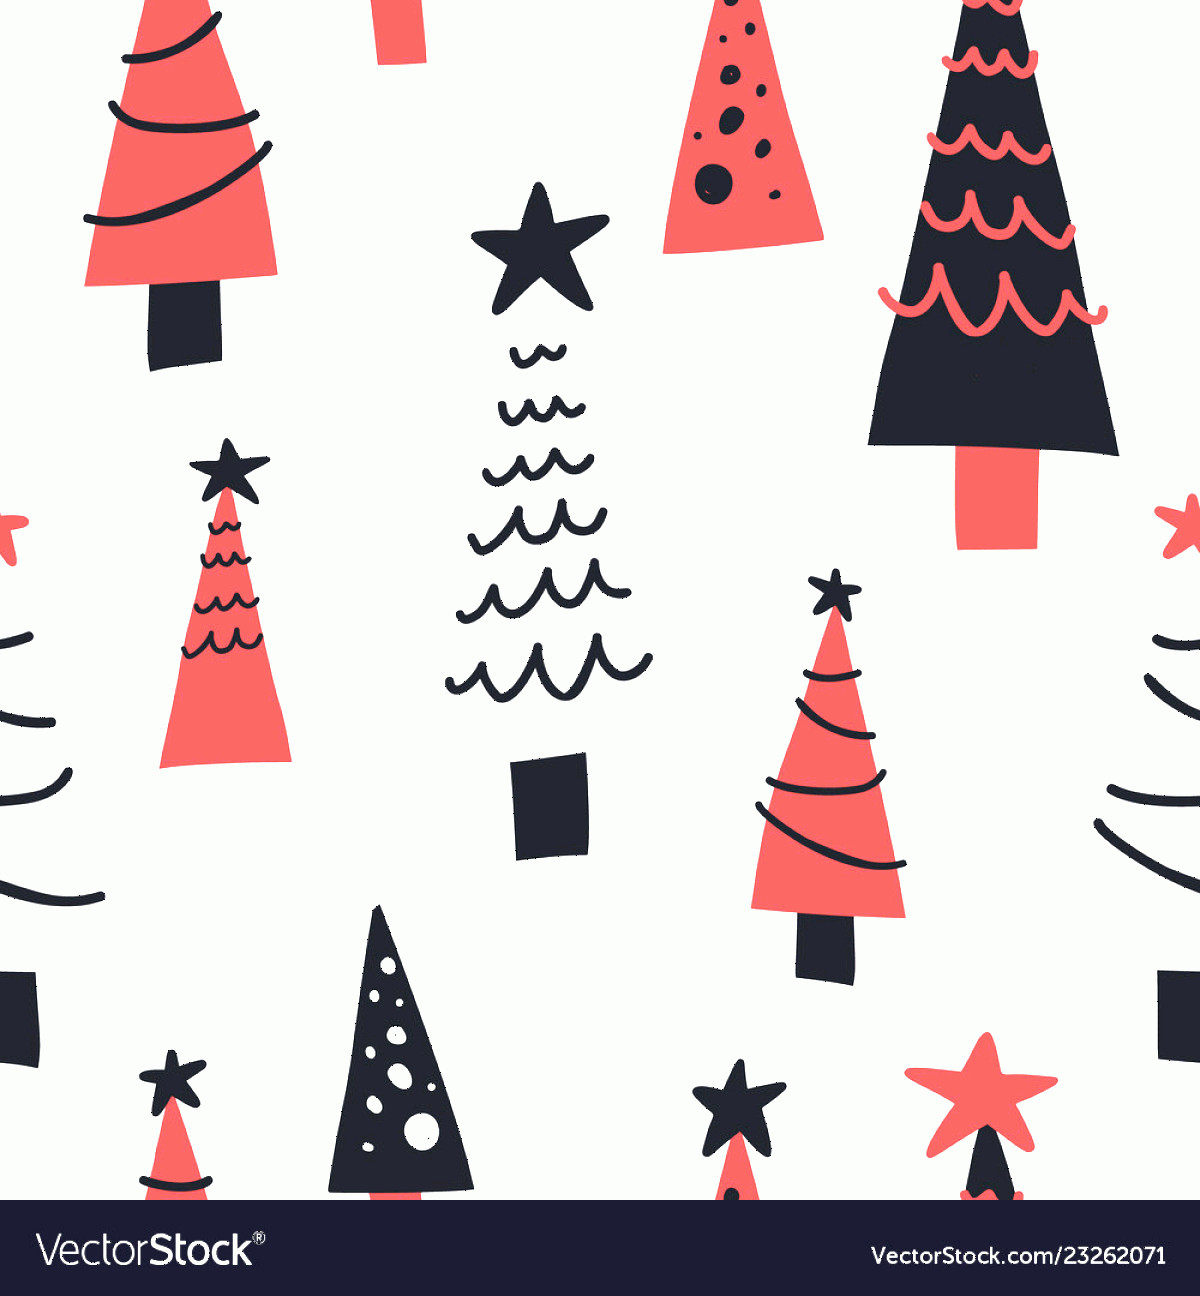 Vector Christmas Toppers: Christmas Trees Hand Drawn Seamless Pattern Vector